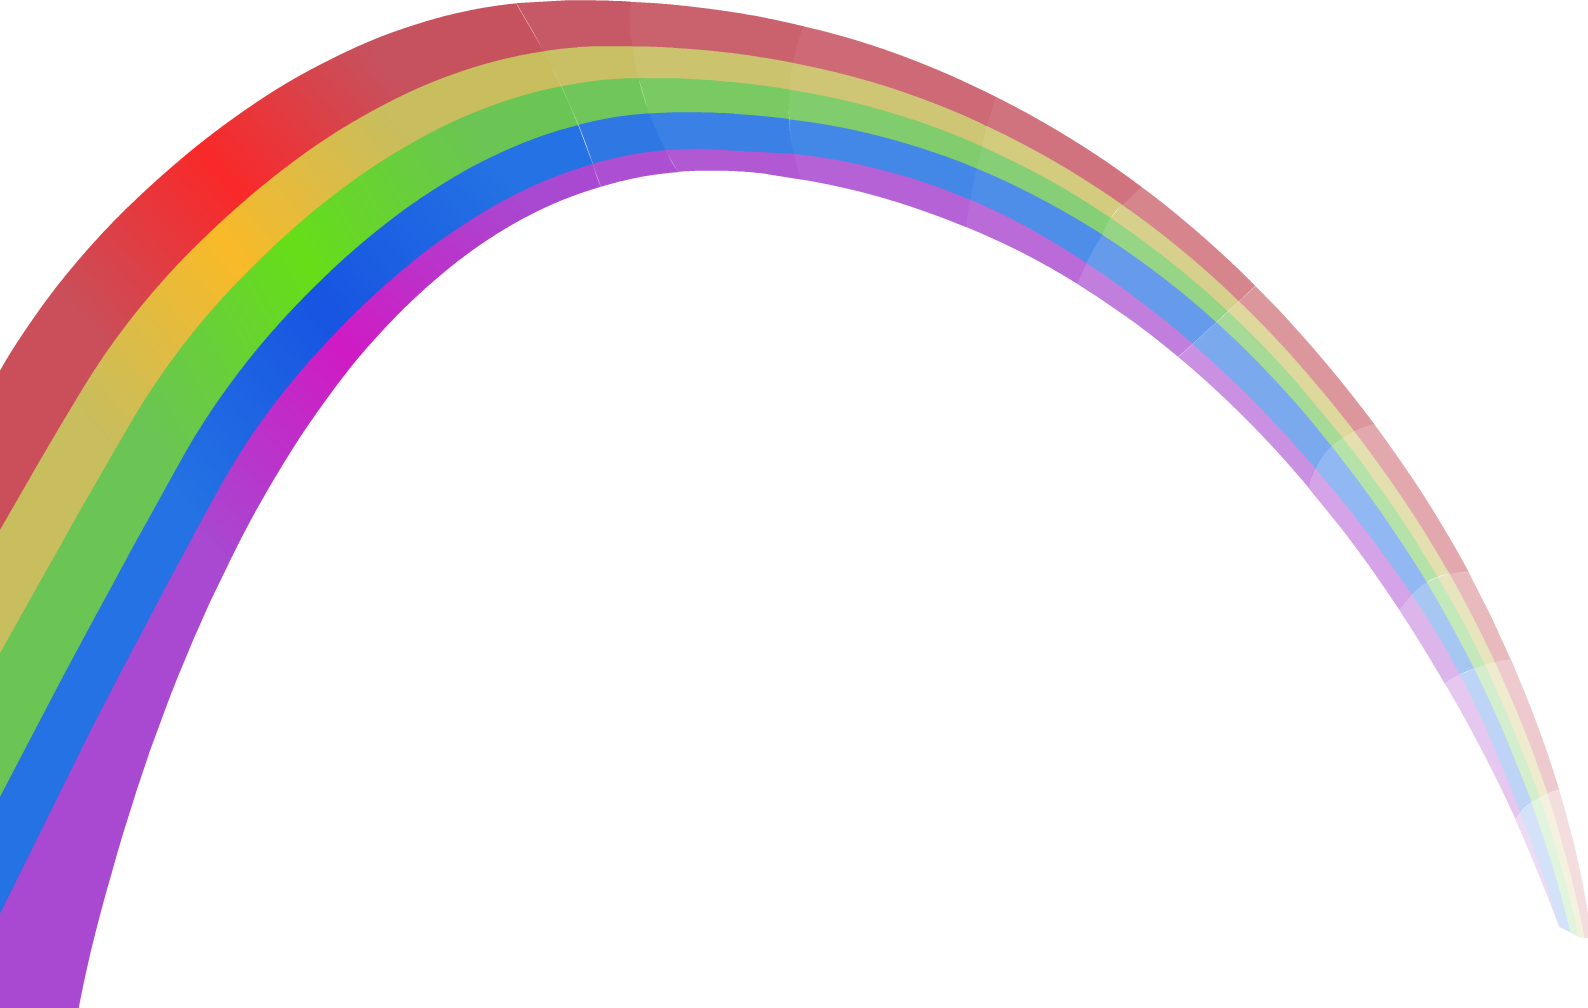 clip art transparent Rainbow png image purepng. Drawing rainbows mountain